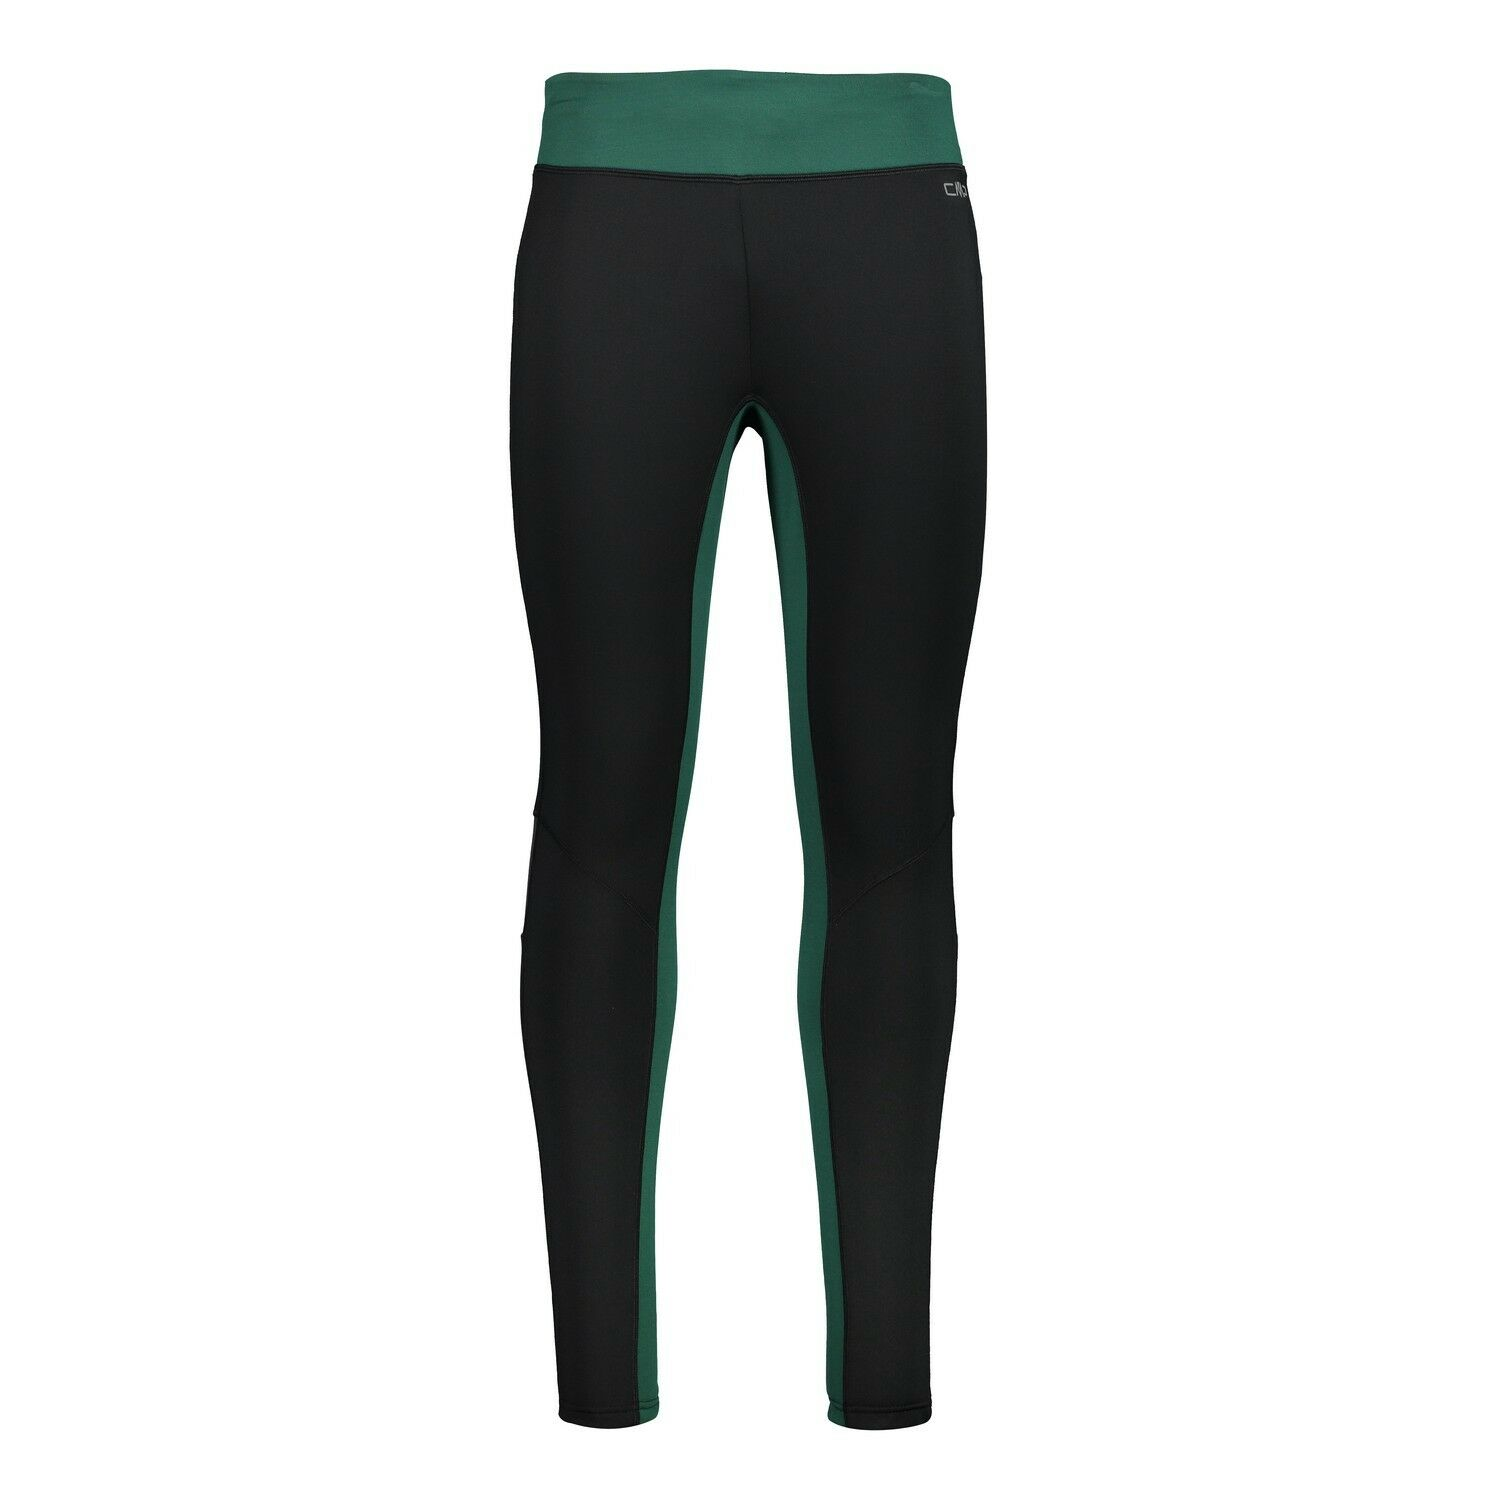 CMP Pantalones Running  Medias de Carreras Man Grande black Transpirable Elástica  save up to 30-50% off